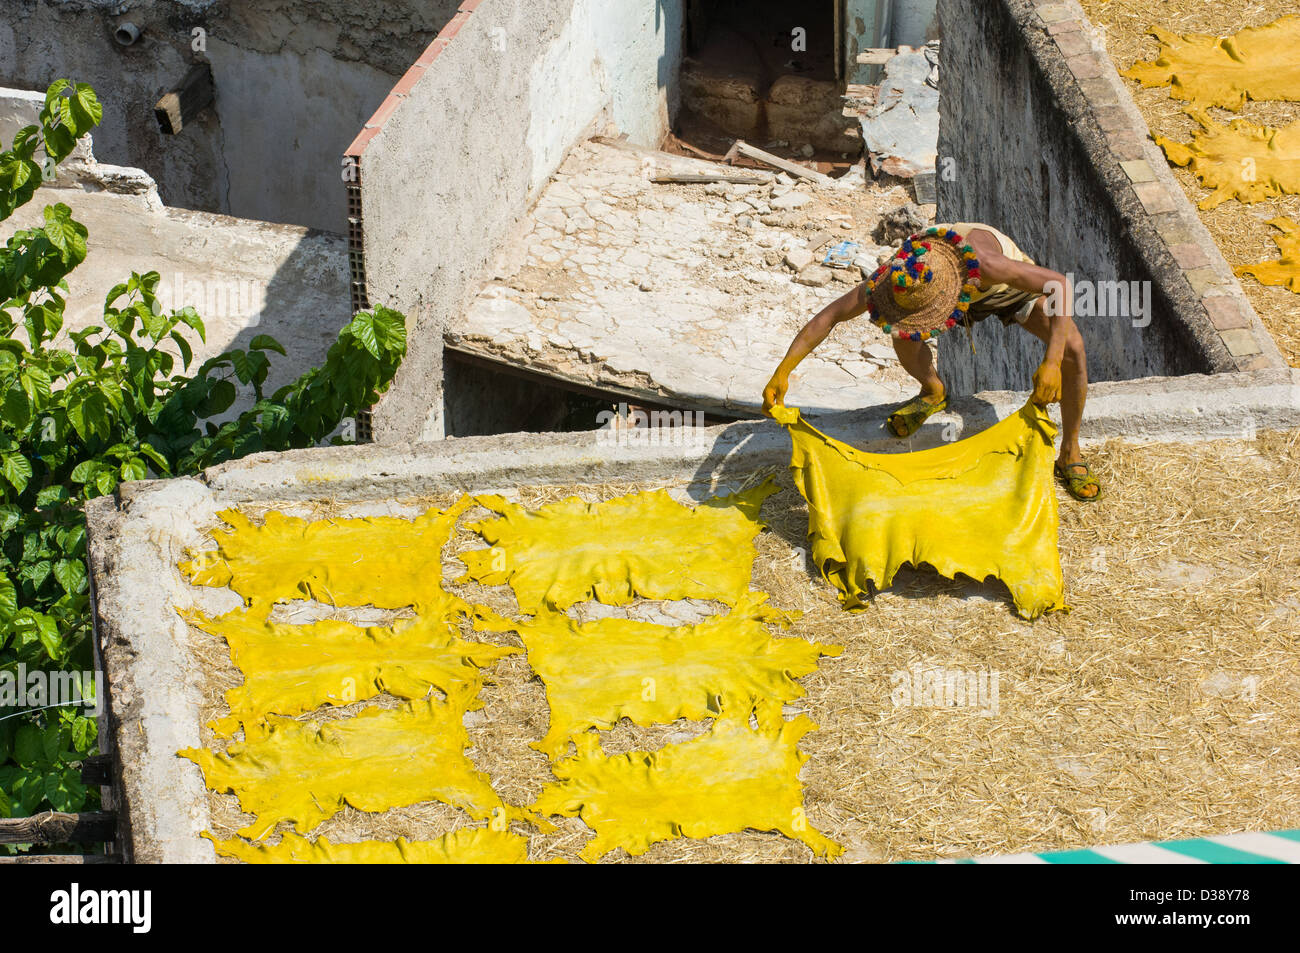 Worker laying out dyed yellow leather skins at the Chouara Tannery, Fes, Morocco - Stock Image